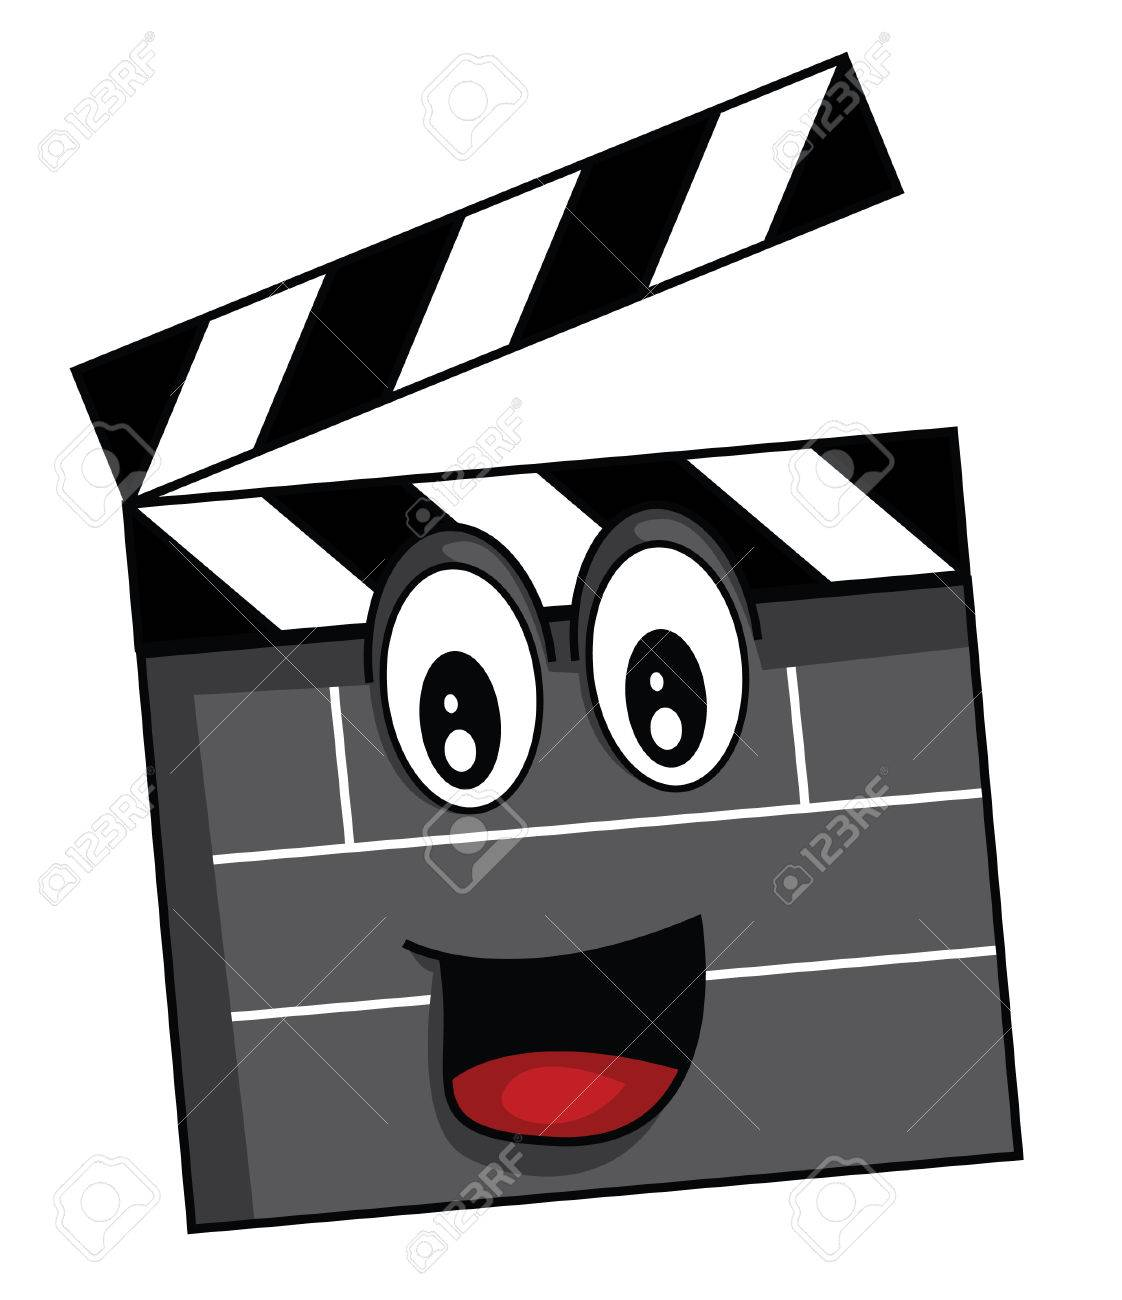 248 Lights Camera Action Stock Vector Illustration And Royalty